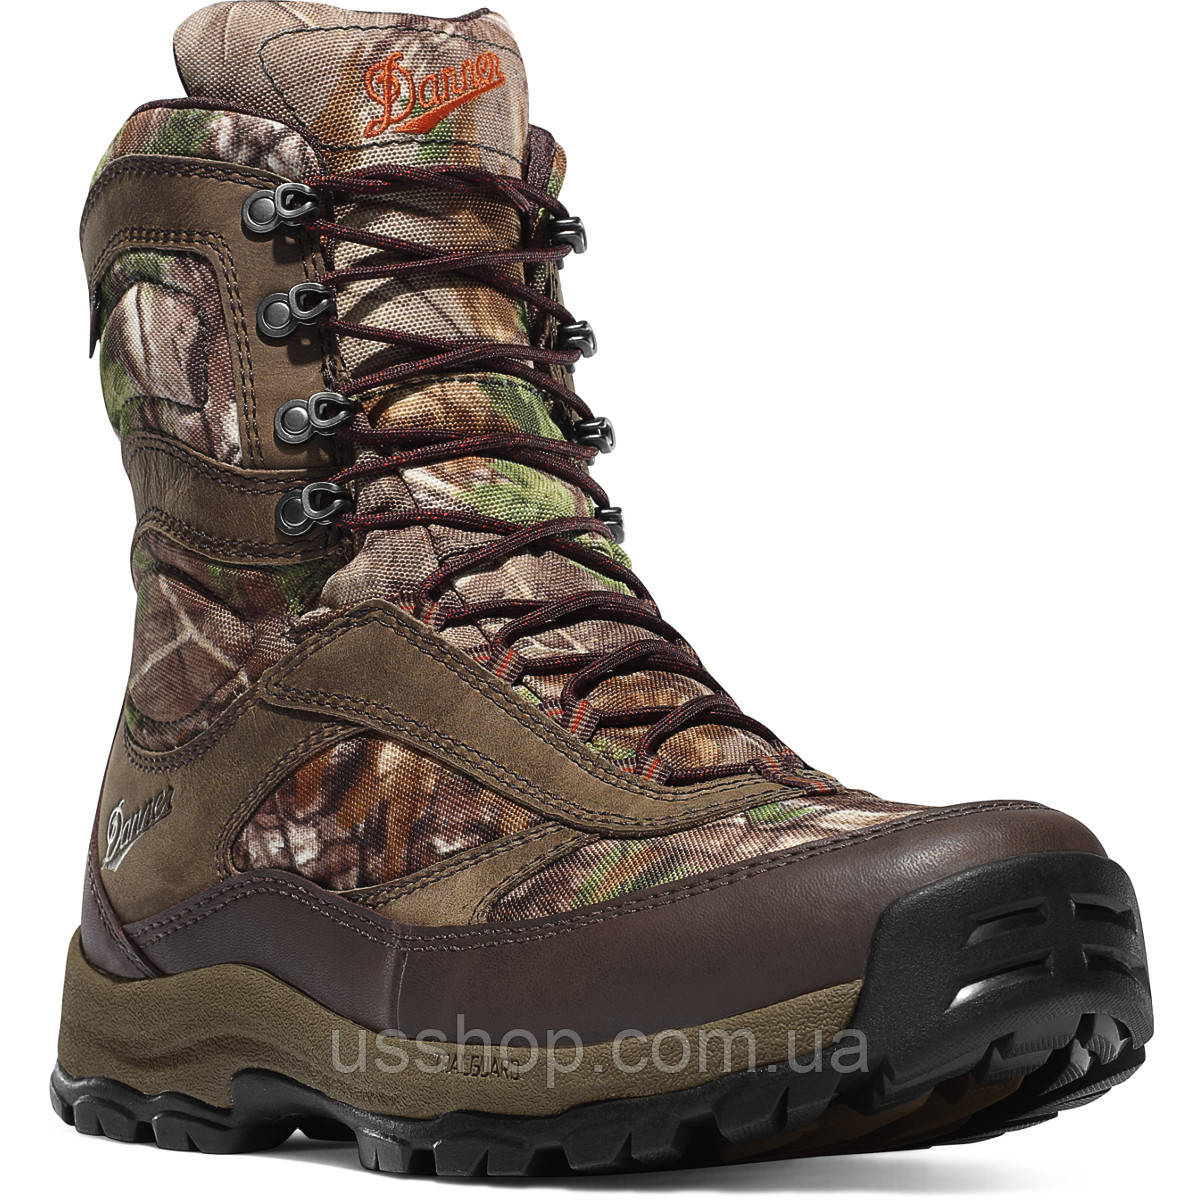 Ботинки для охоты Danner HIGH GROUND REALTREE XTRA GREEN